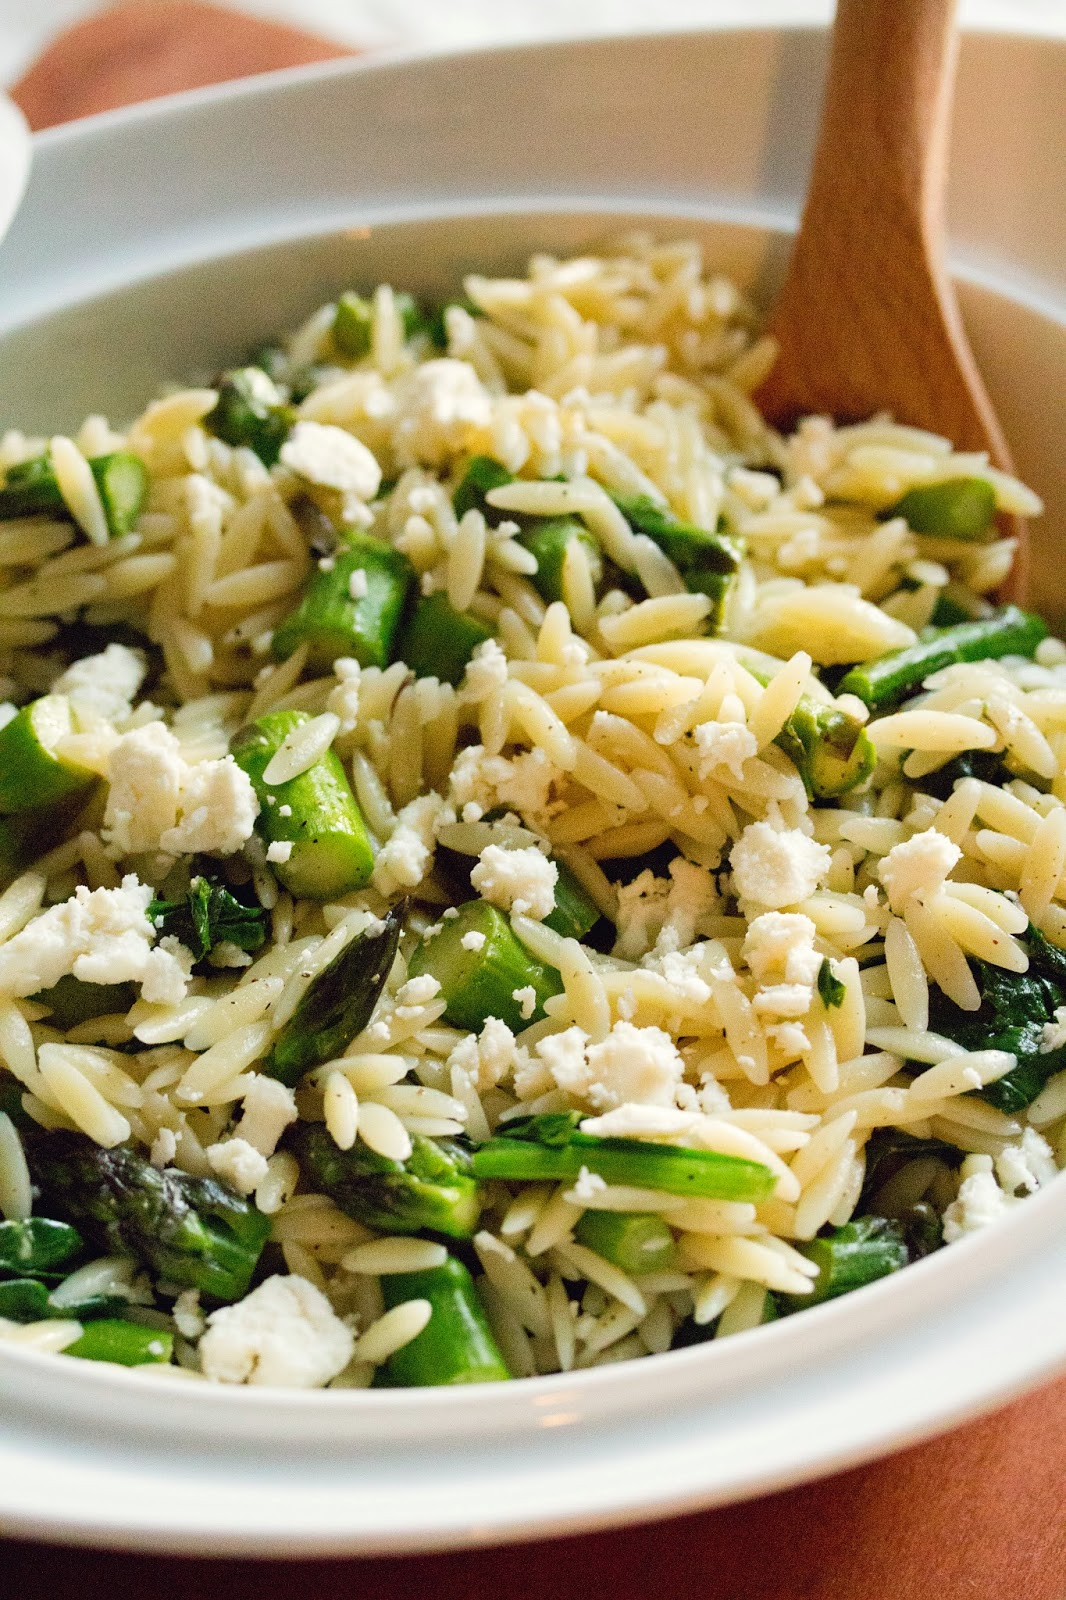 Lemon Orzo Salad With Asparagus, Spinach, And Feta Recipe ...